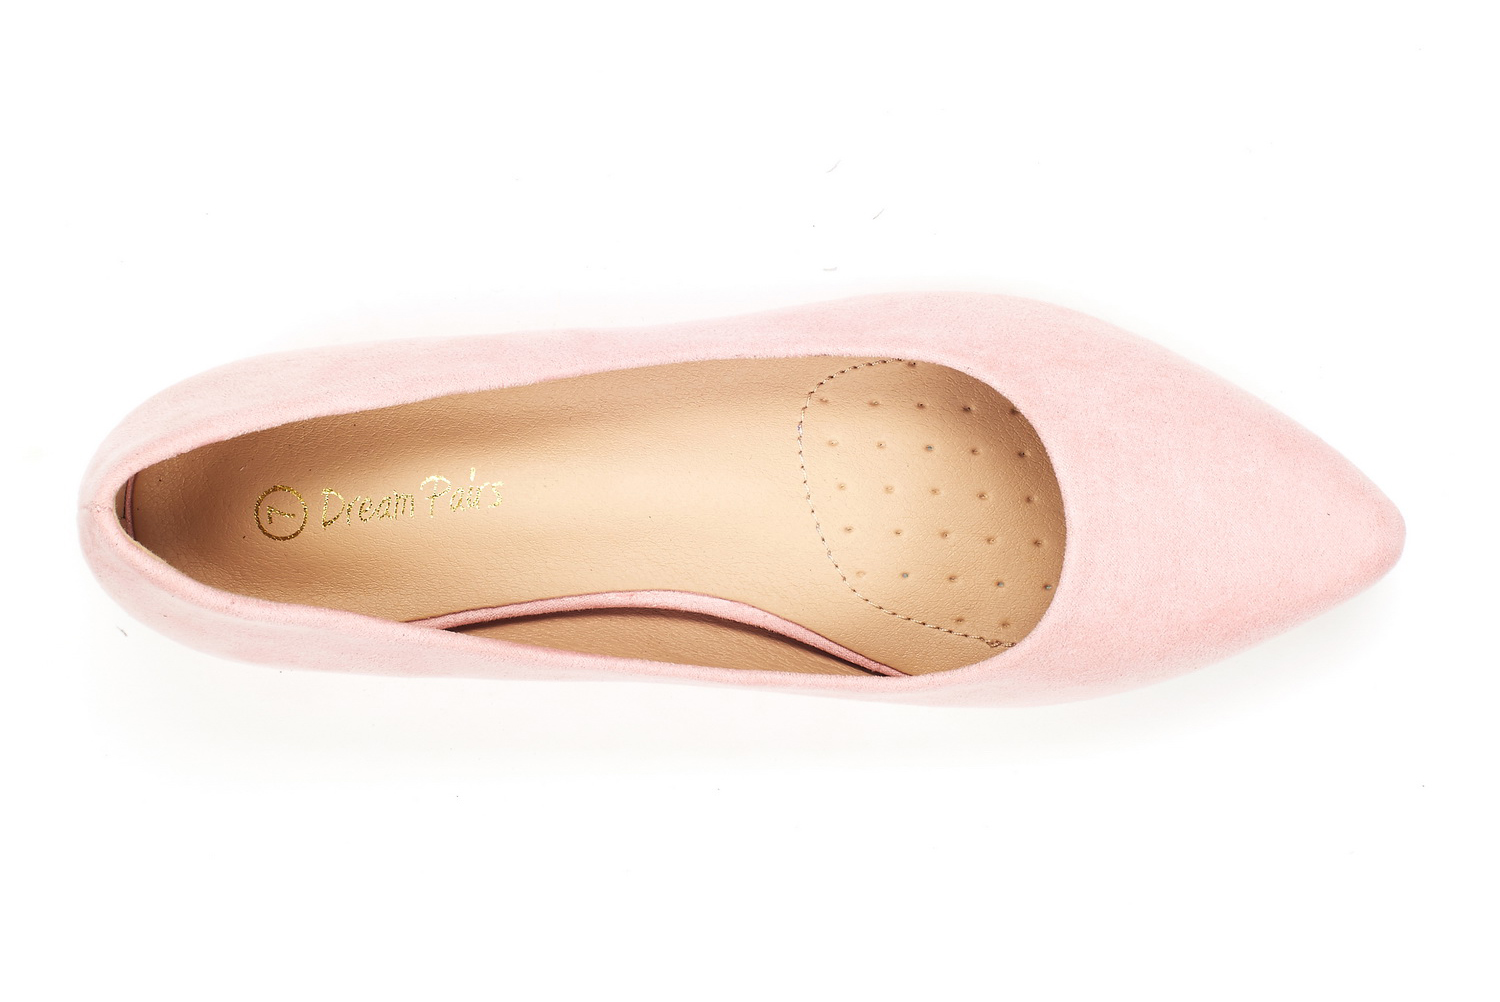 DREAM-PAIRS-Women-Low-Wedge-Flats-Ladies-Pointed-Toe-Slip-On-Comfort-Flat-Shoes thumbnail 77